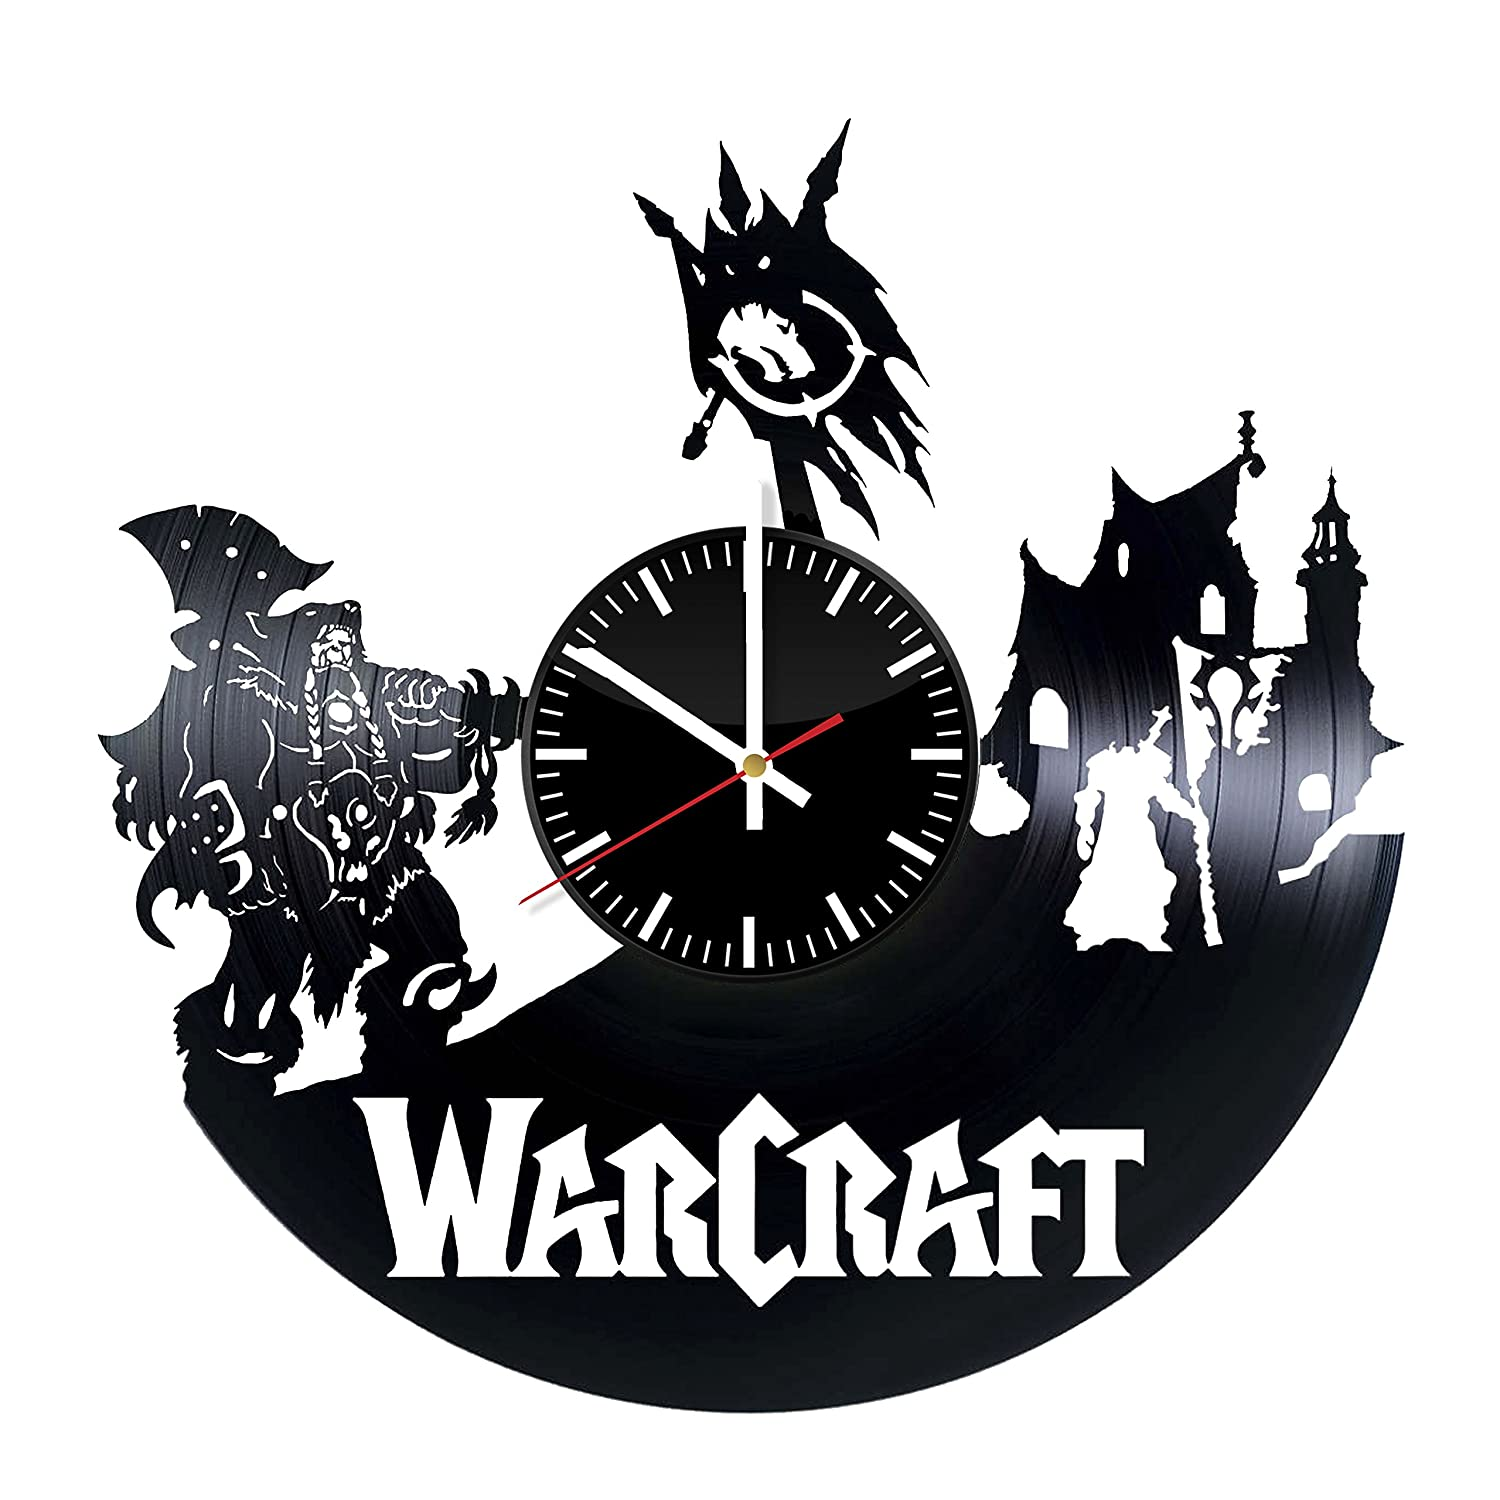 WarCraft Vinyl Records Wall Clock - Wall Art Room Decor Handmade Decoration  Party Supplies Theme Birthday Gift For Adults Men Women - Vintage And  Modern ...